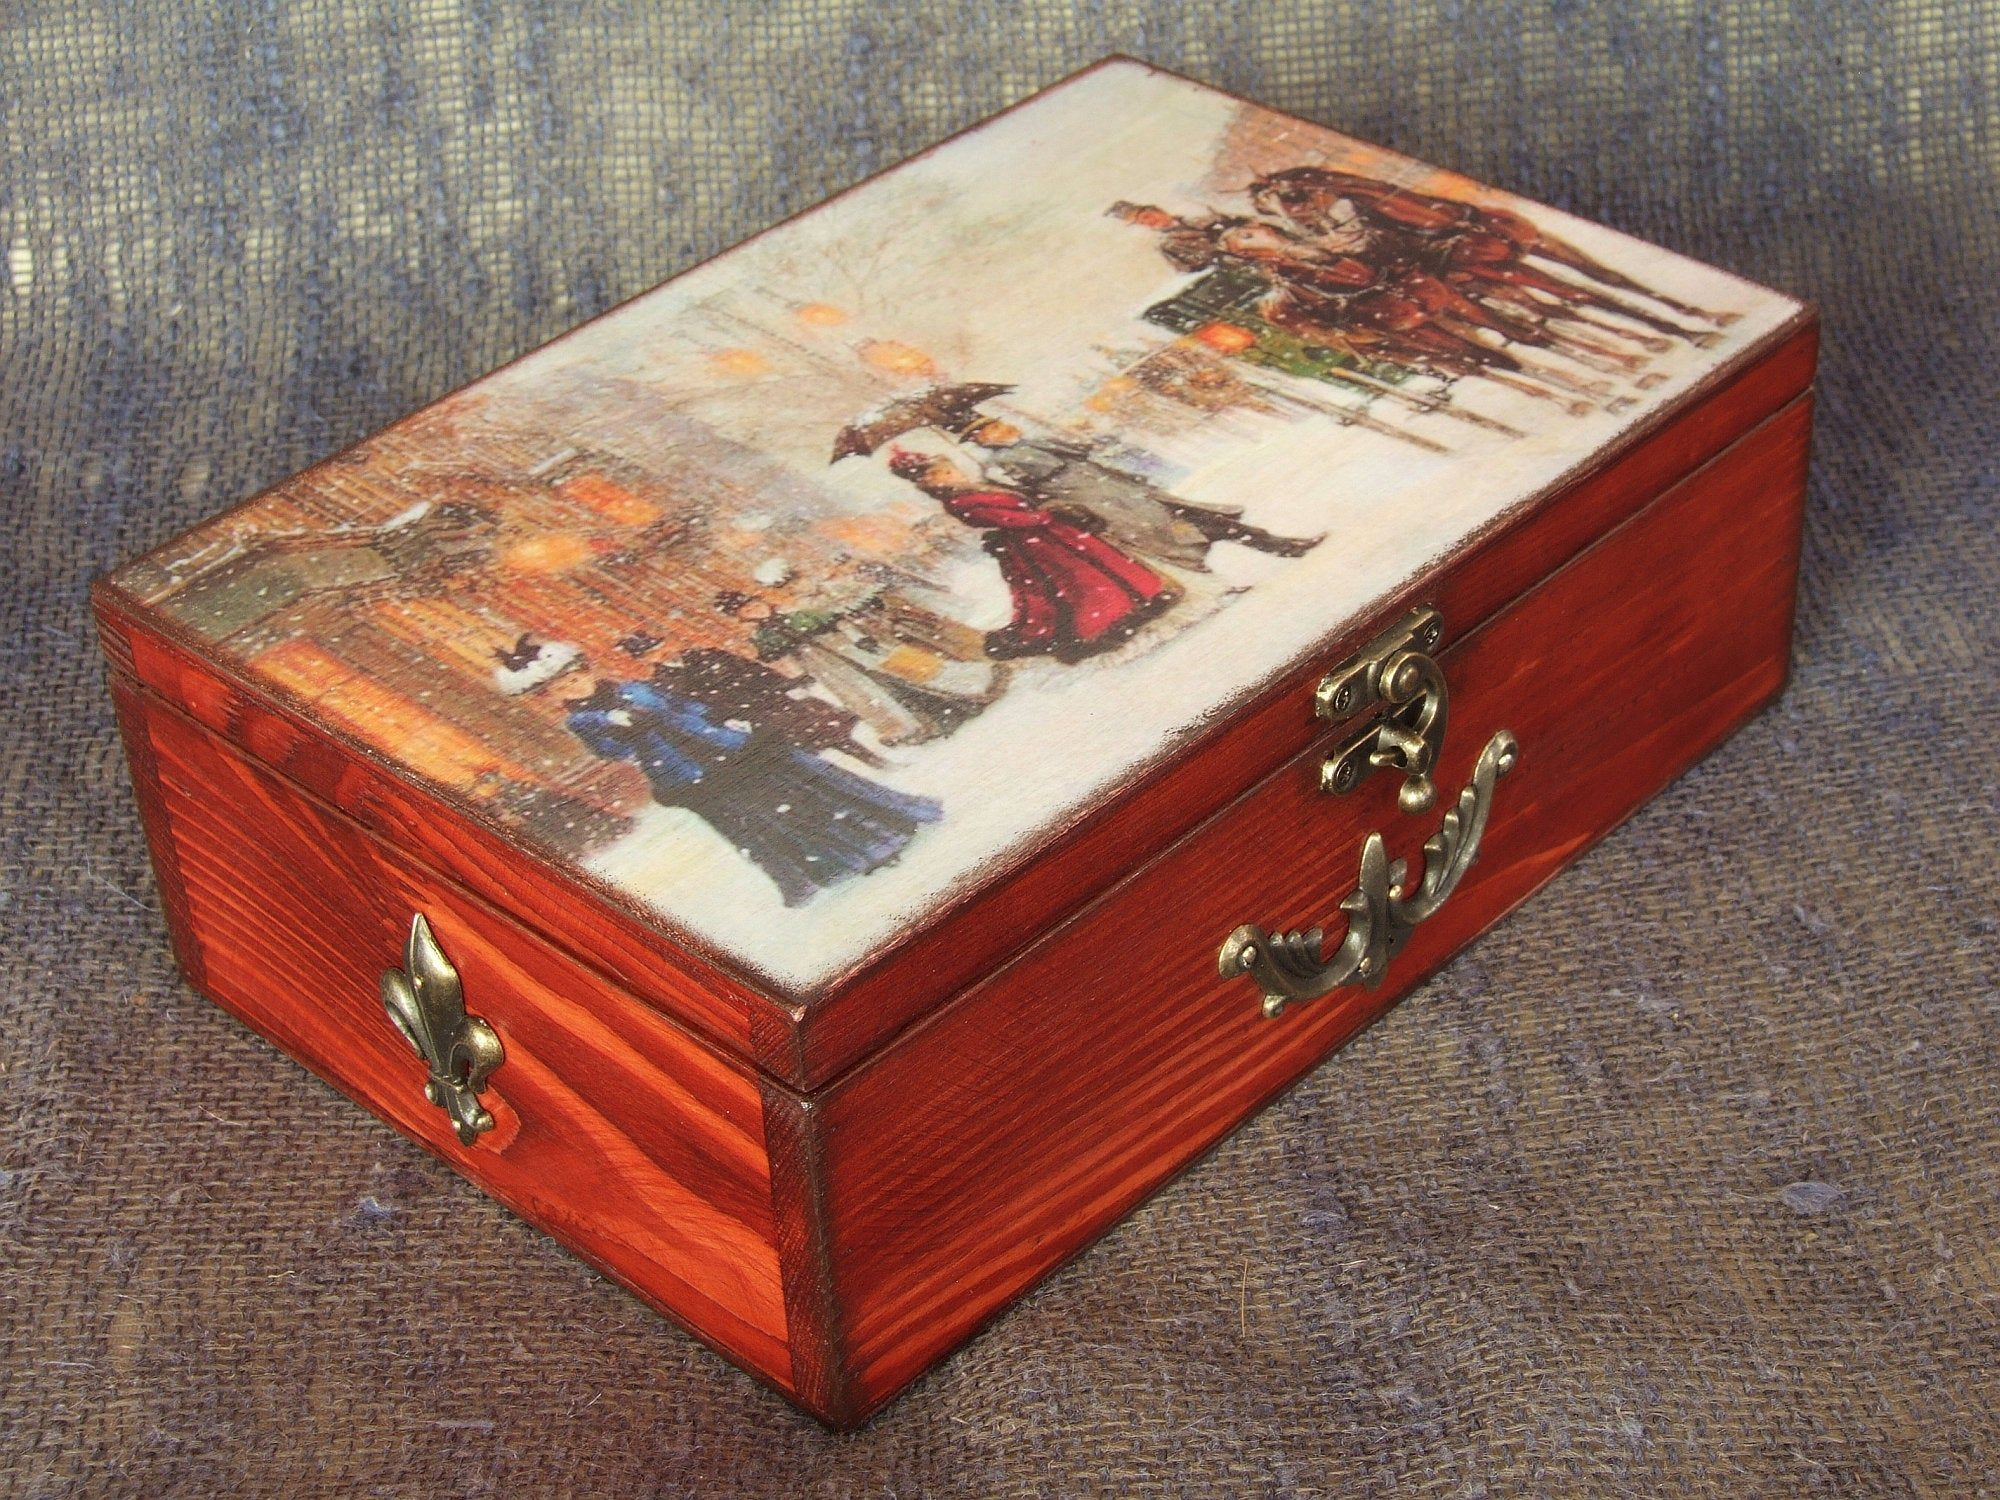 Beautiful Vintage Jewellery Box By Livvysloft On Etsy Painted Jewelry Boxes Jewelry Box Diy Jewelry Box Makeover